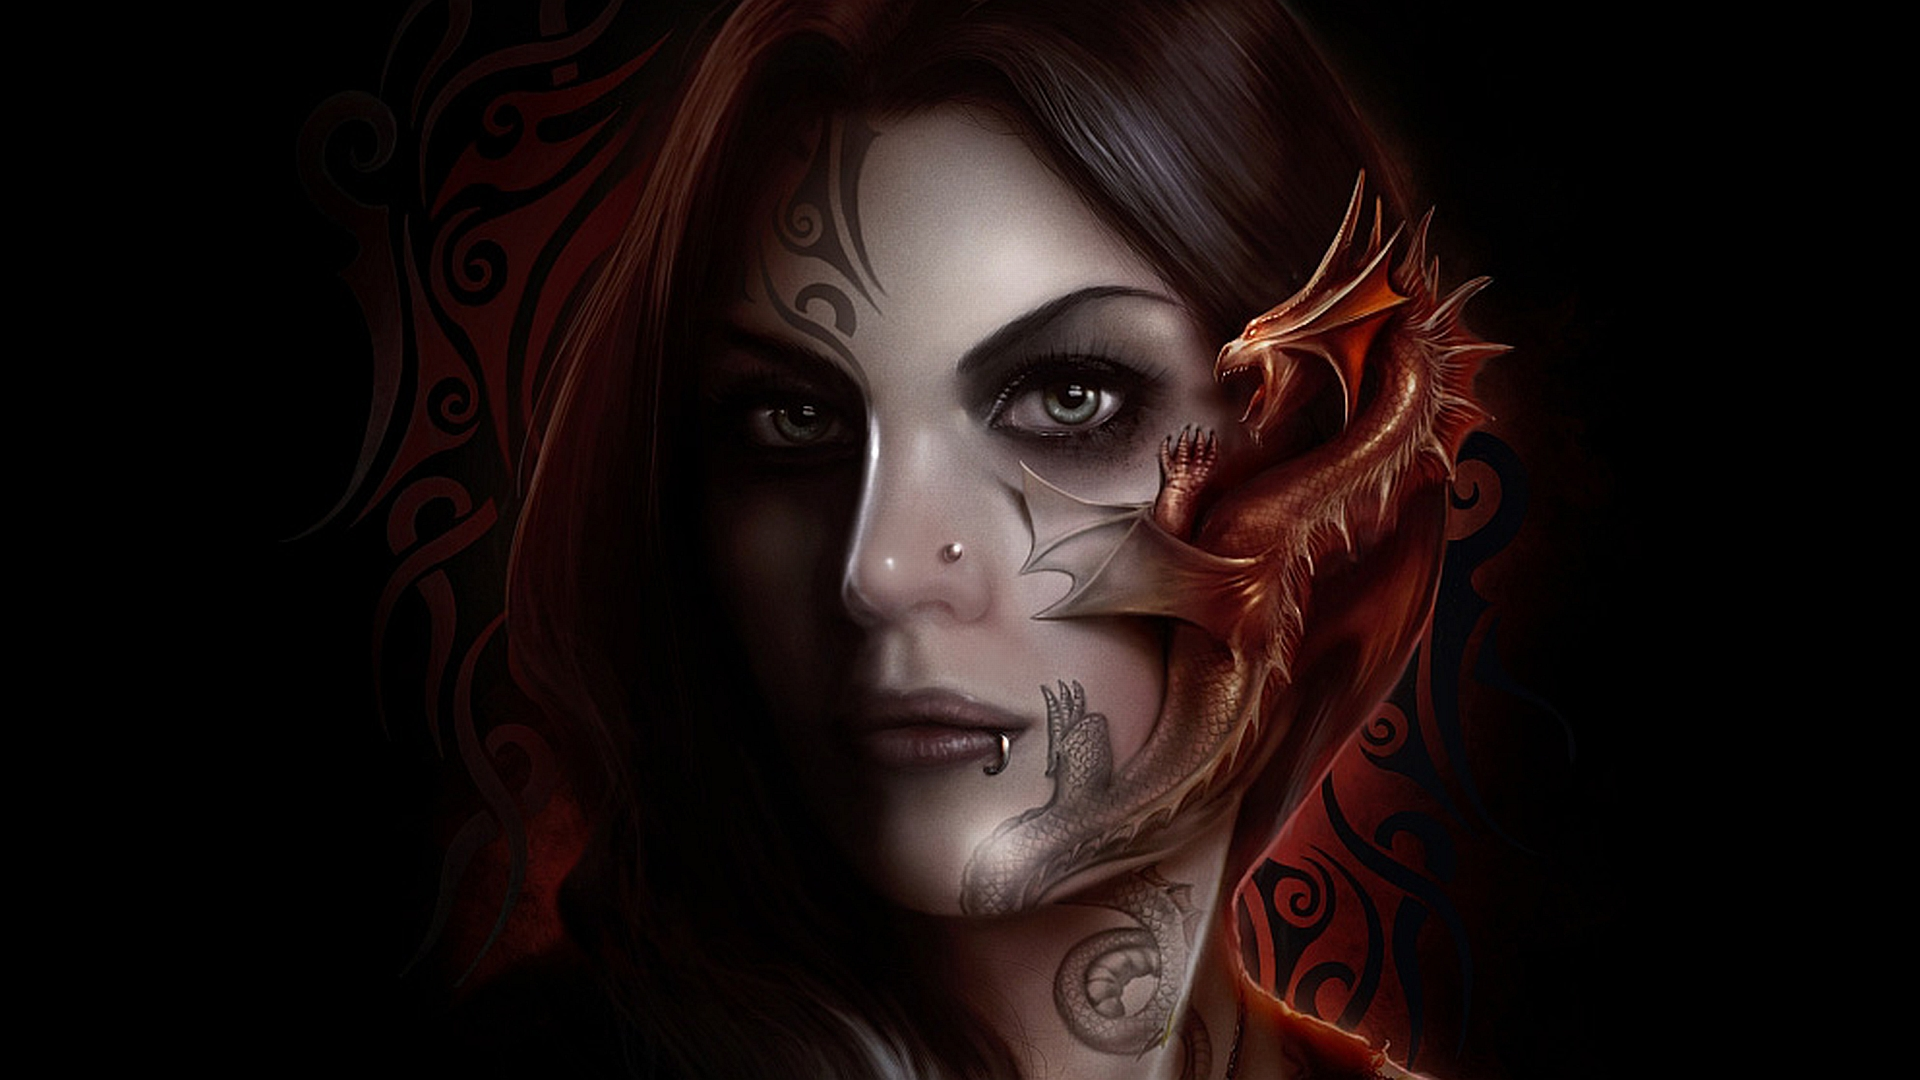 Goth Girl Wallpaper 1440x2960 Tattoo Full Hd Wallpaper And Background Image 1920x1080